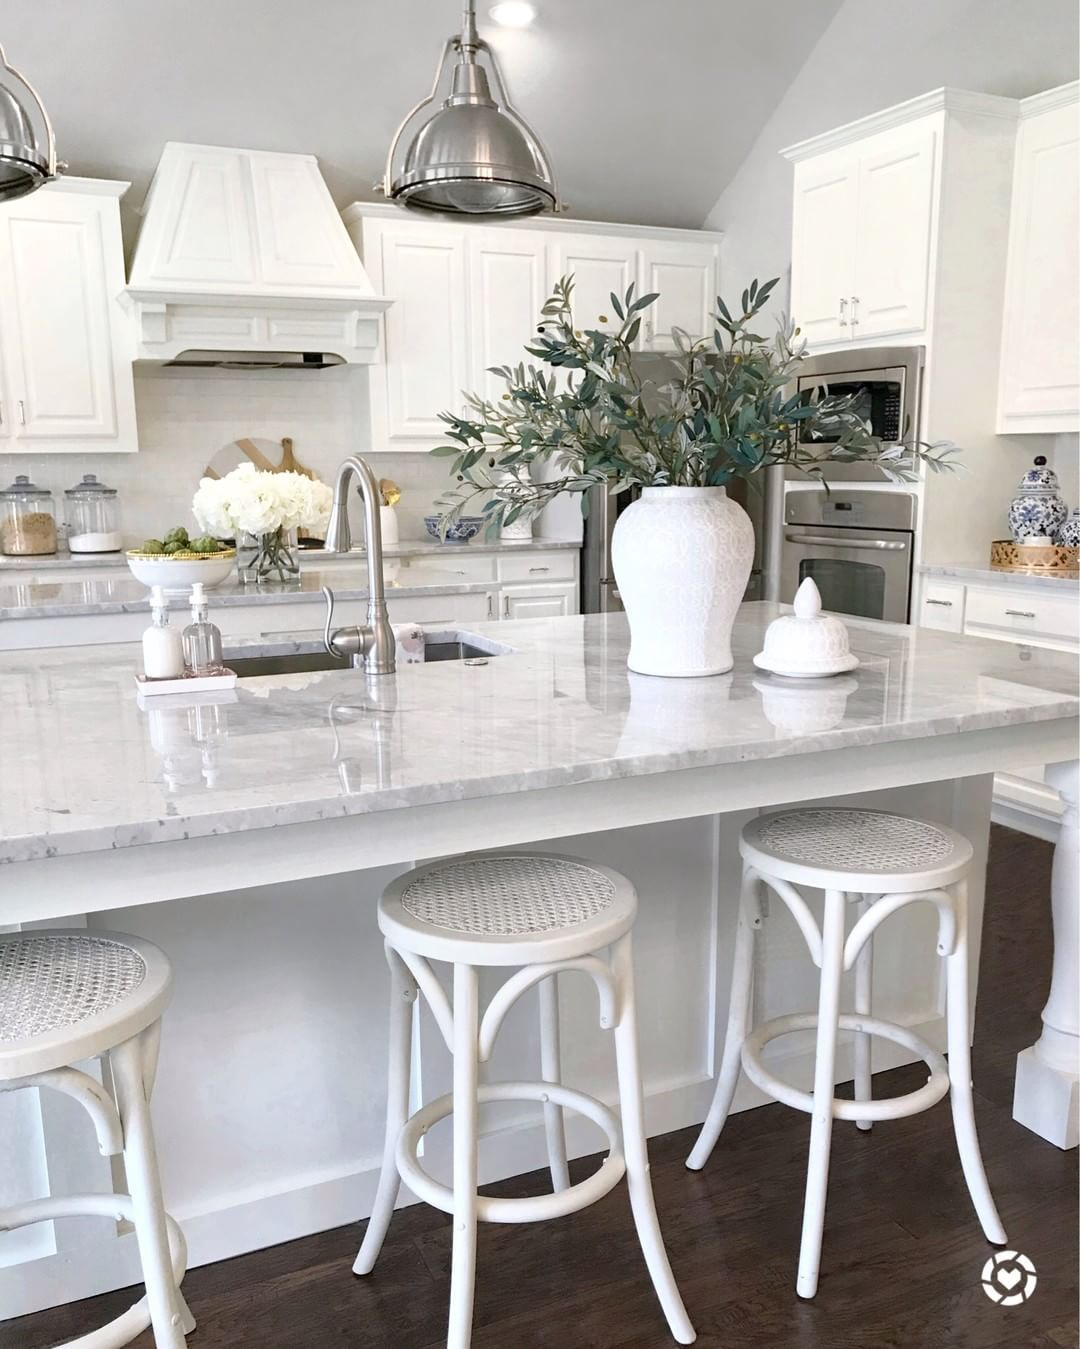 White Kitchen Simply White Paint Benjamin Moore Carrara Marble